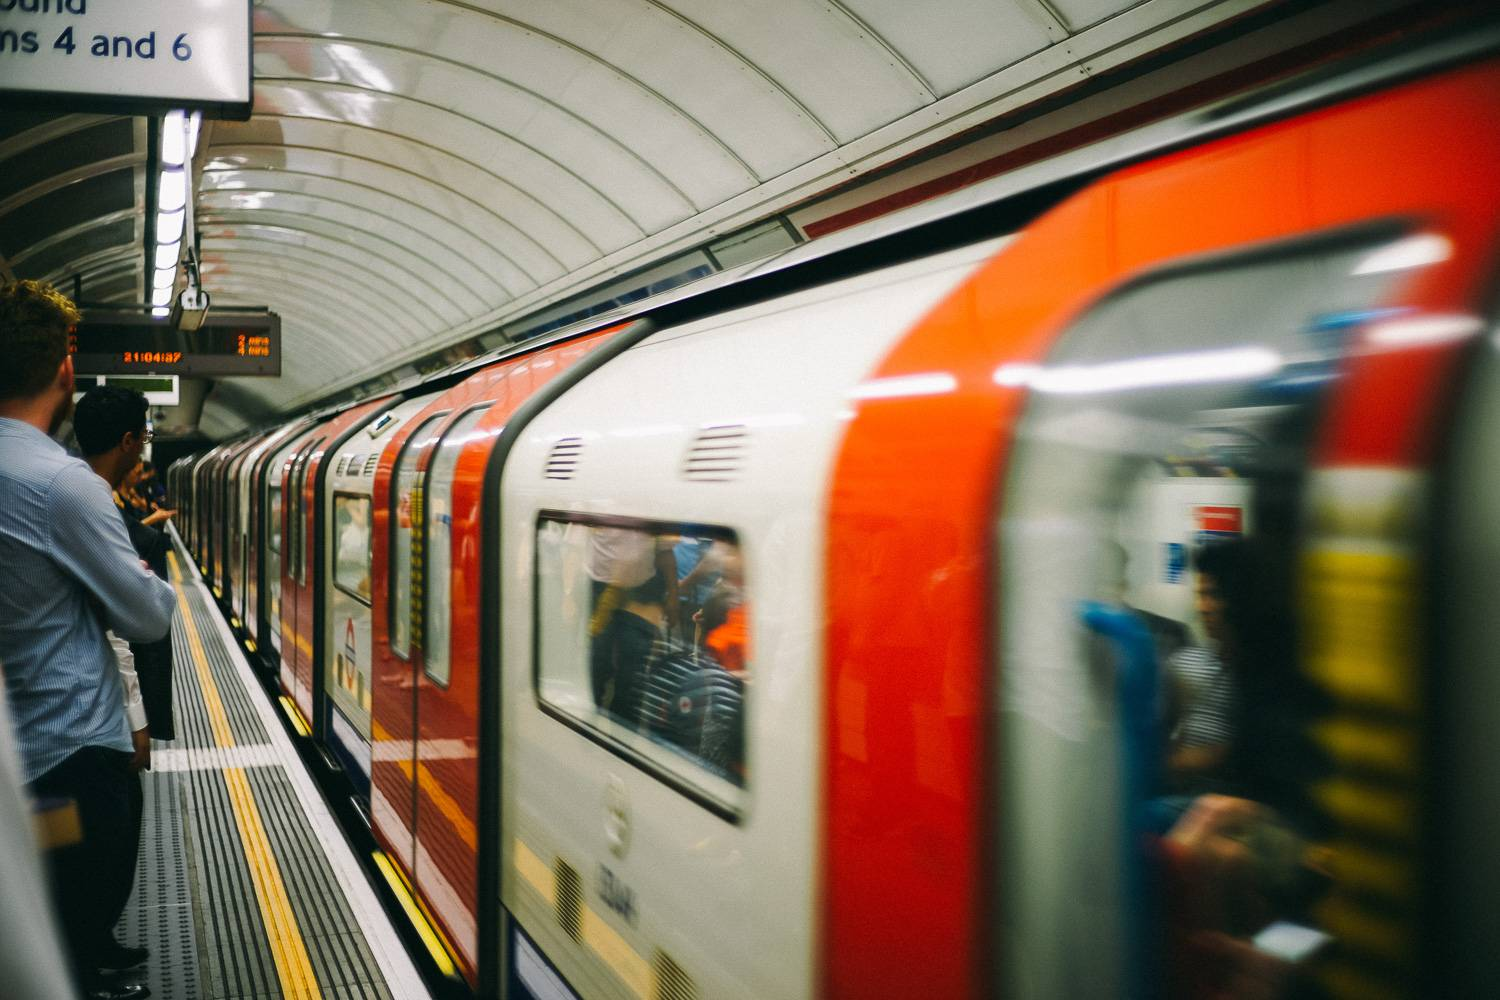 Image of a London Underground train pulling into a Tube station.